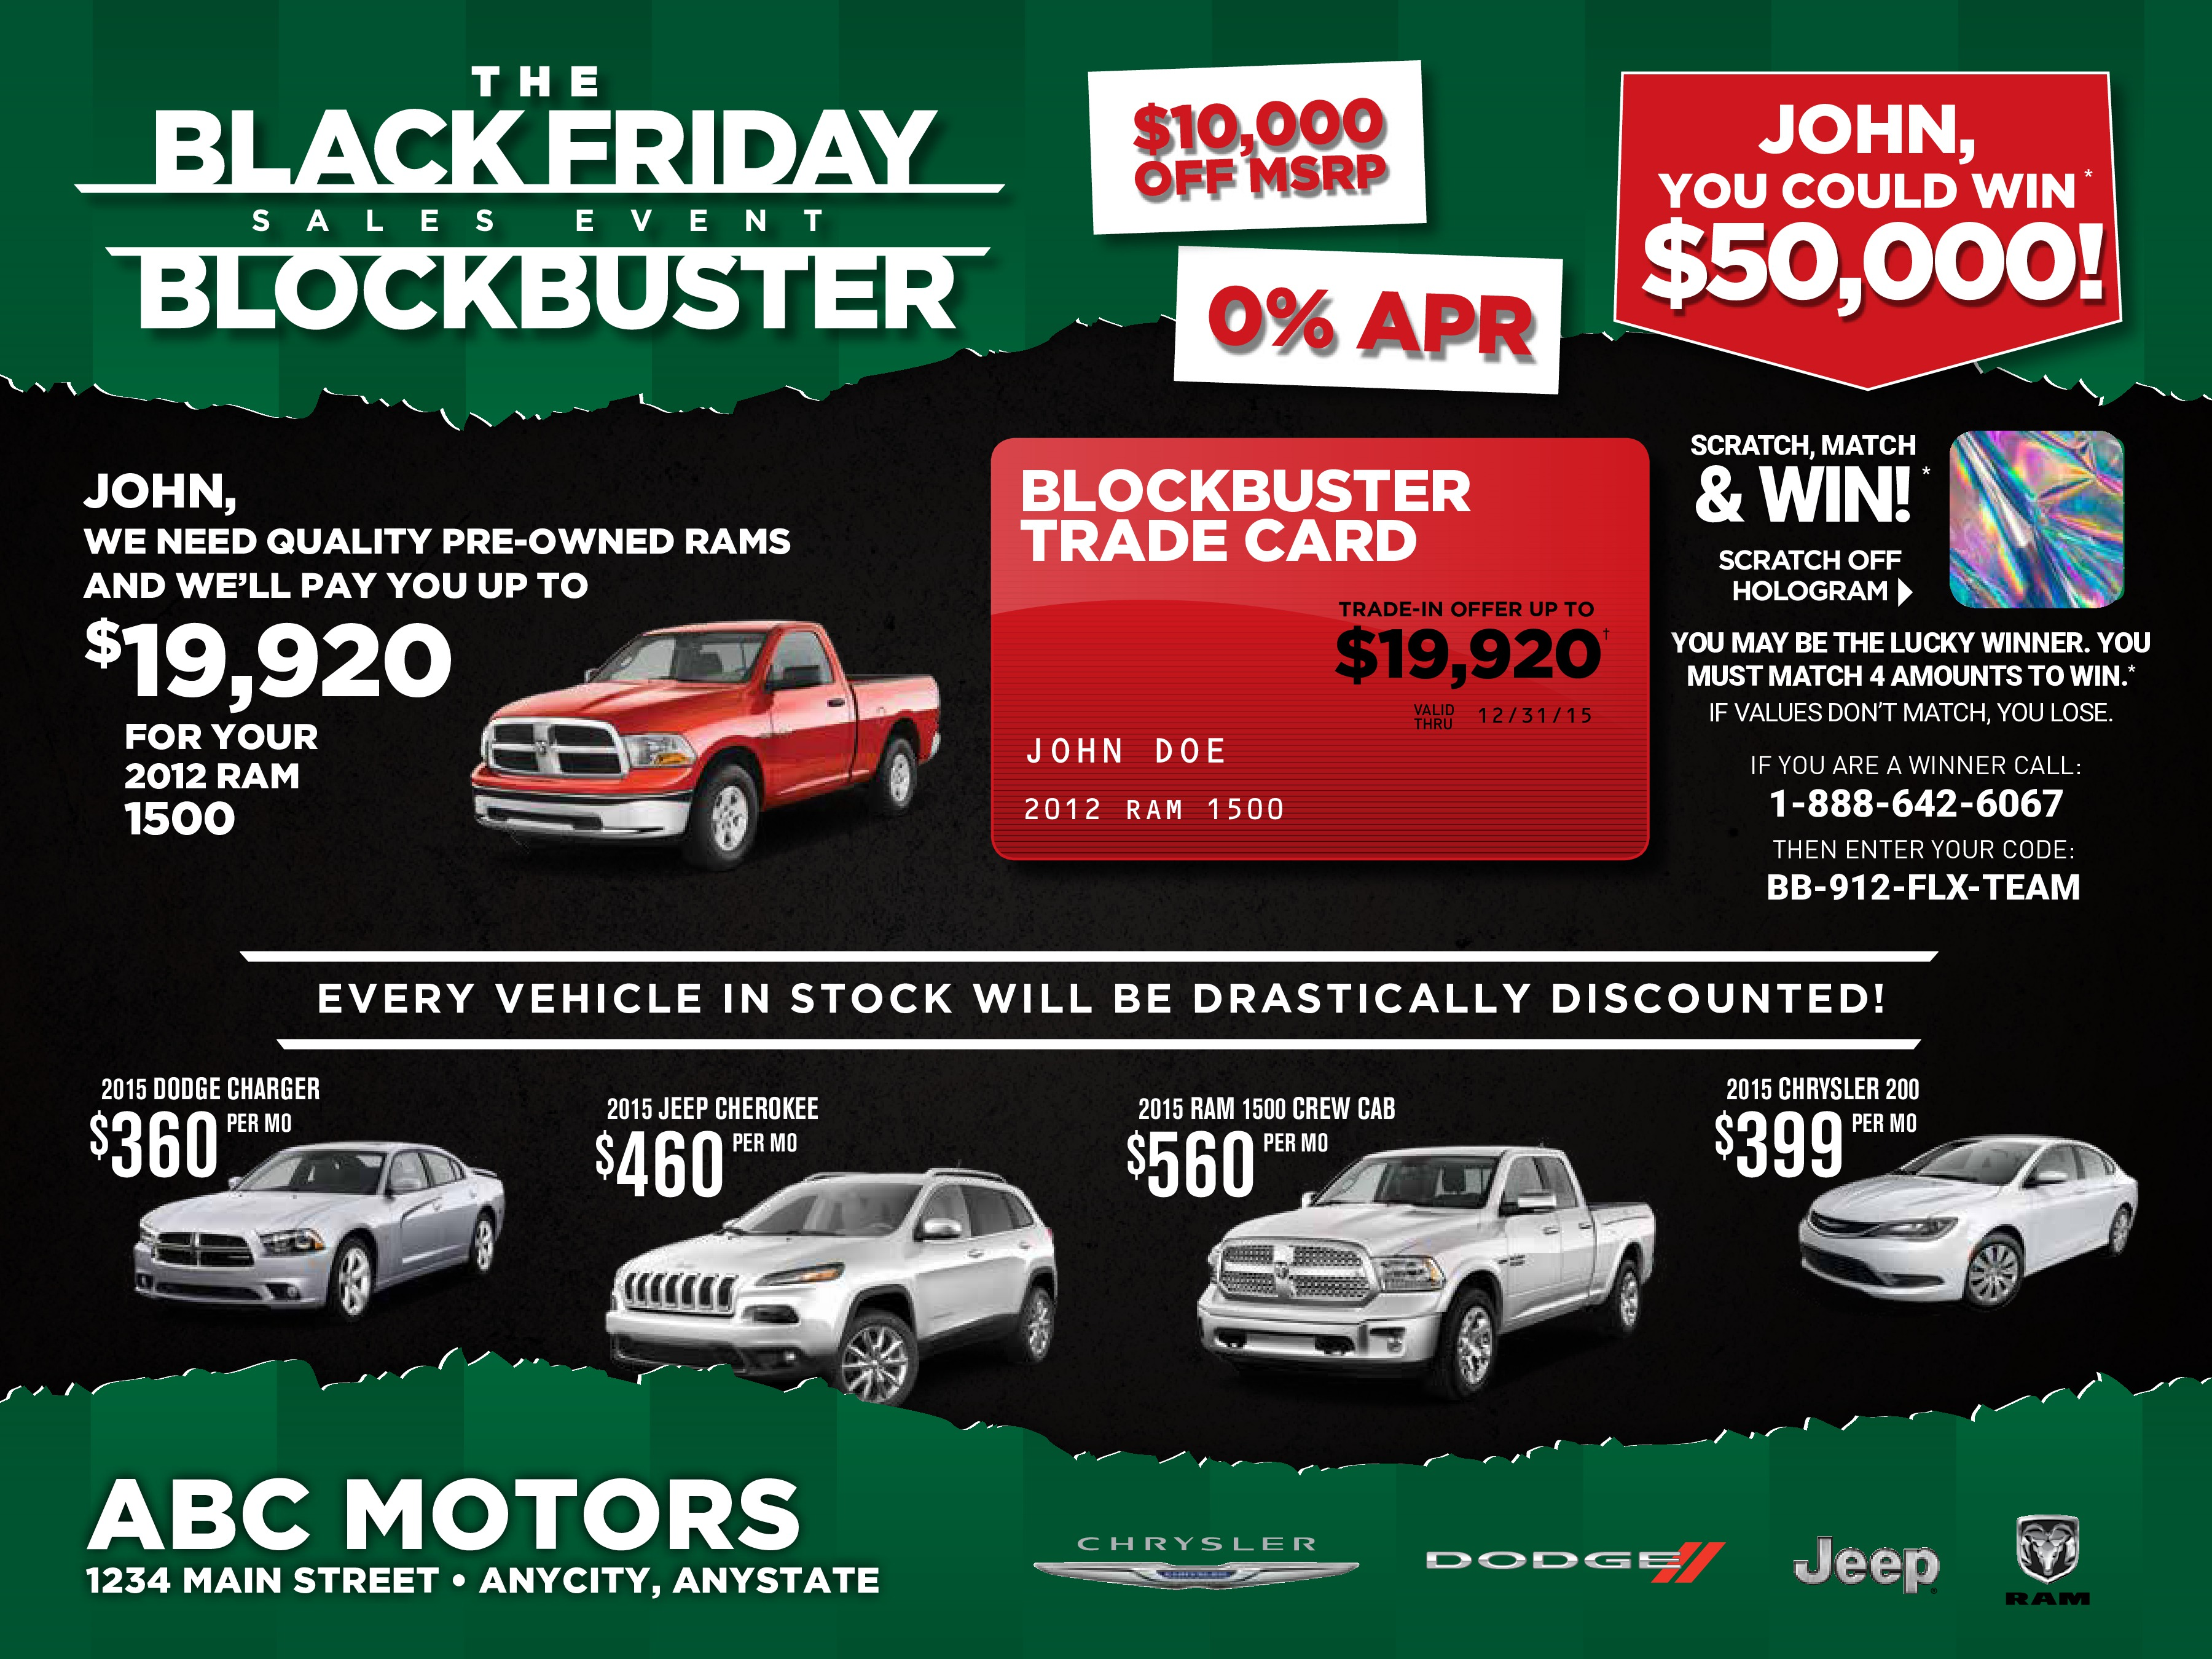 Black Friday Sales Event Flyers Ourmailworks Com